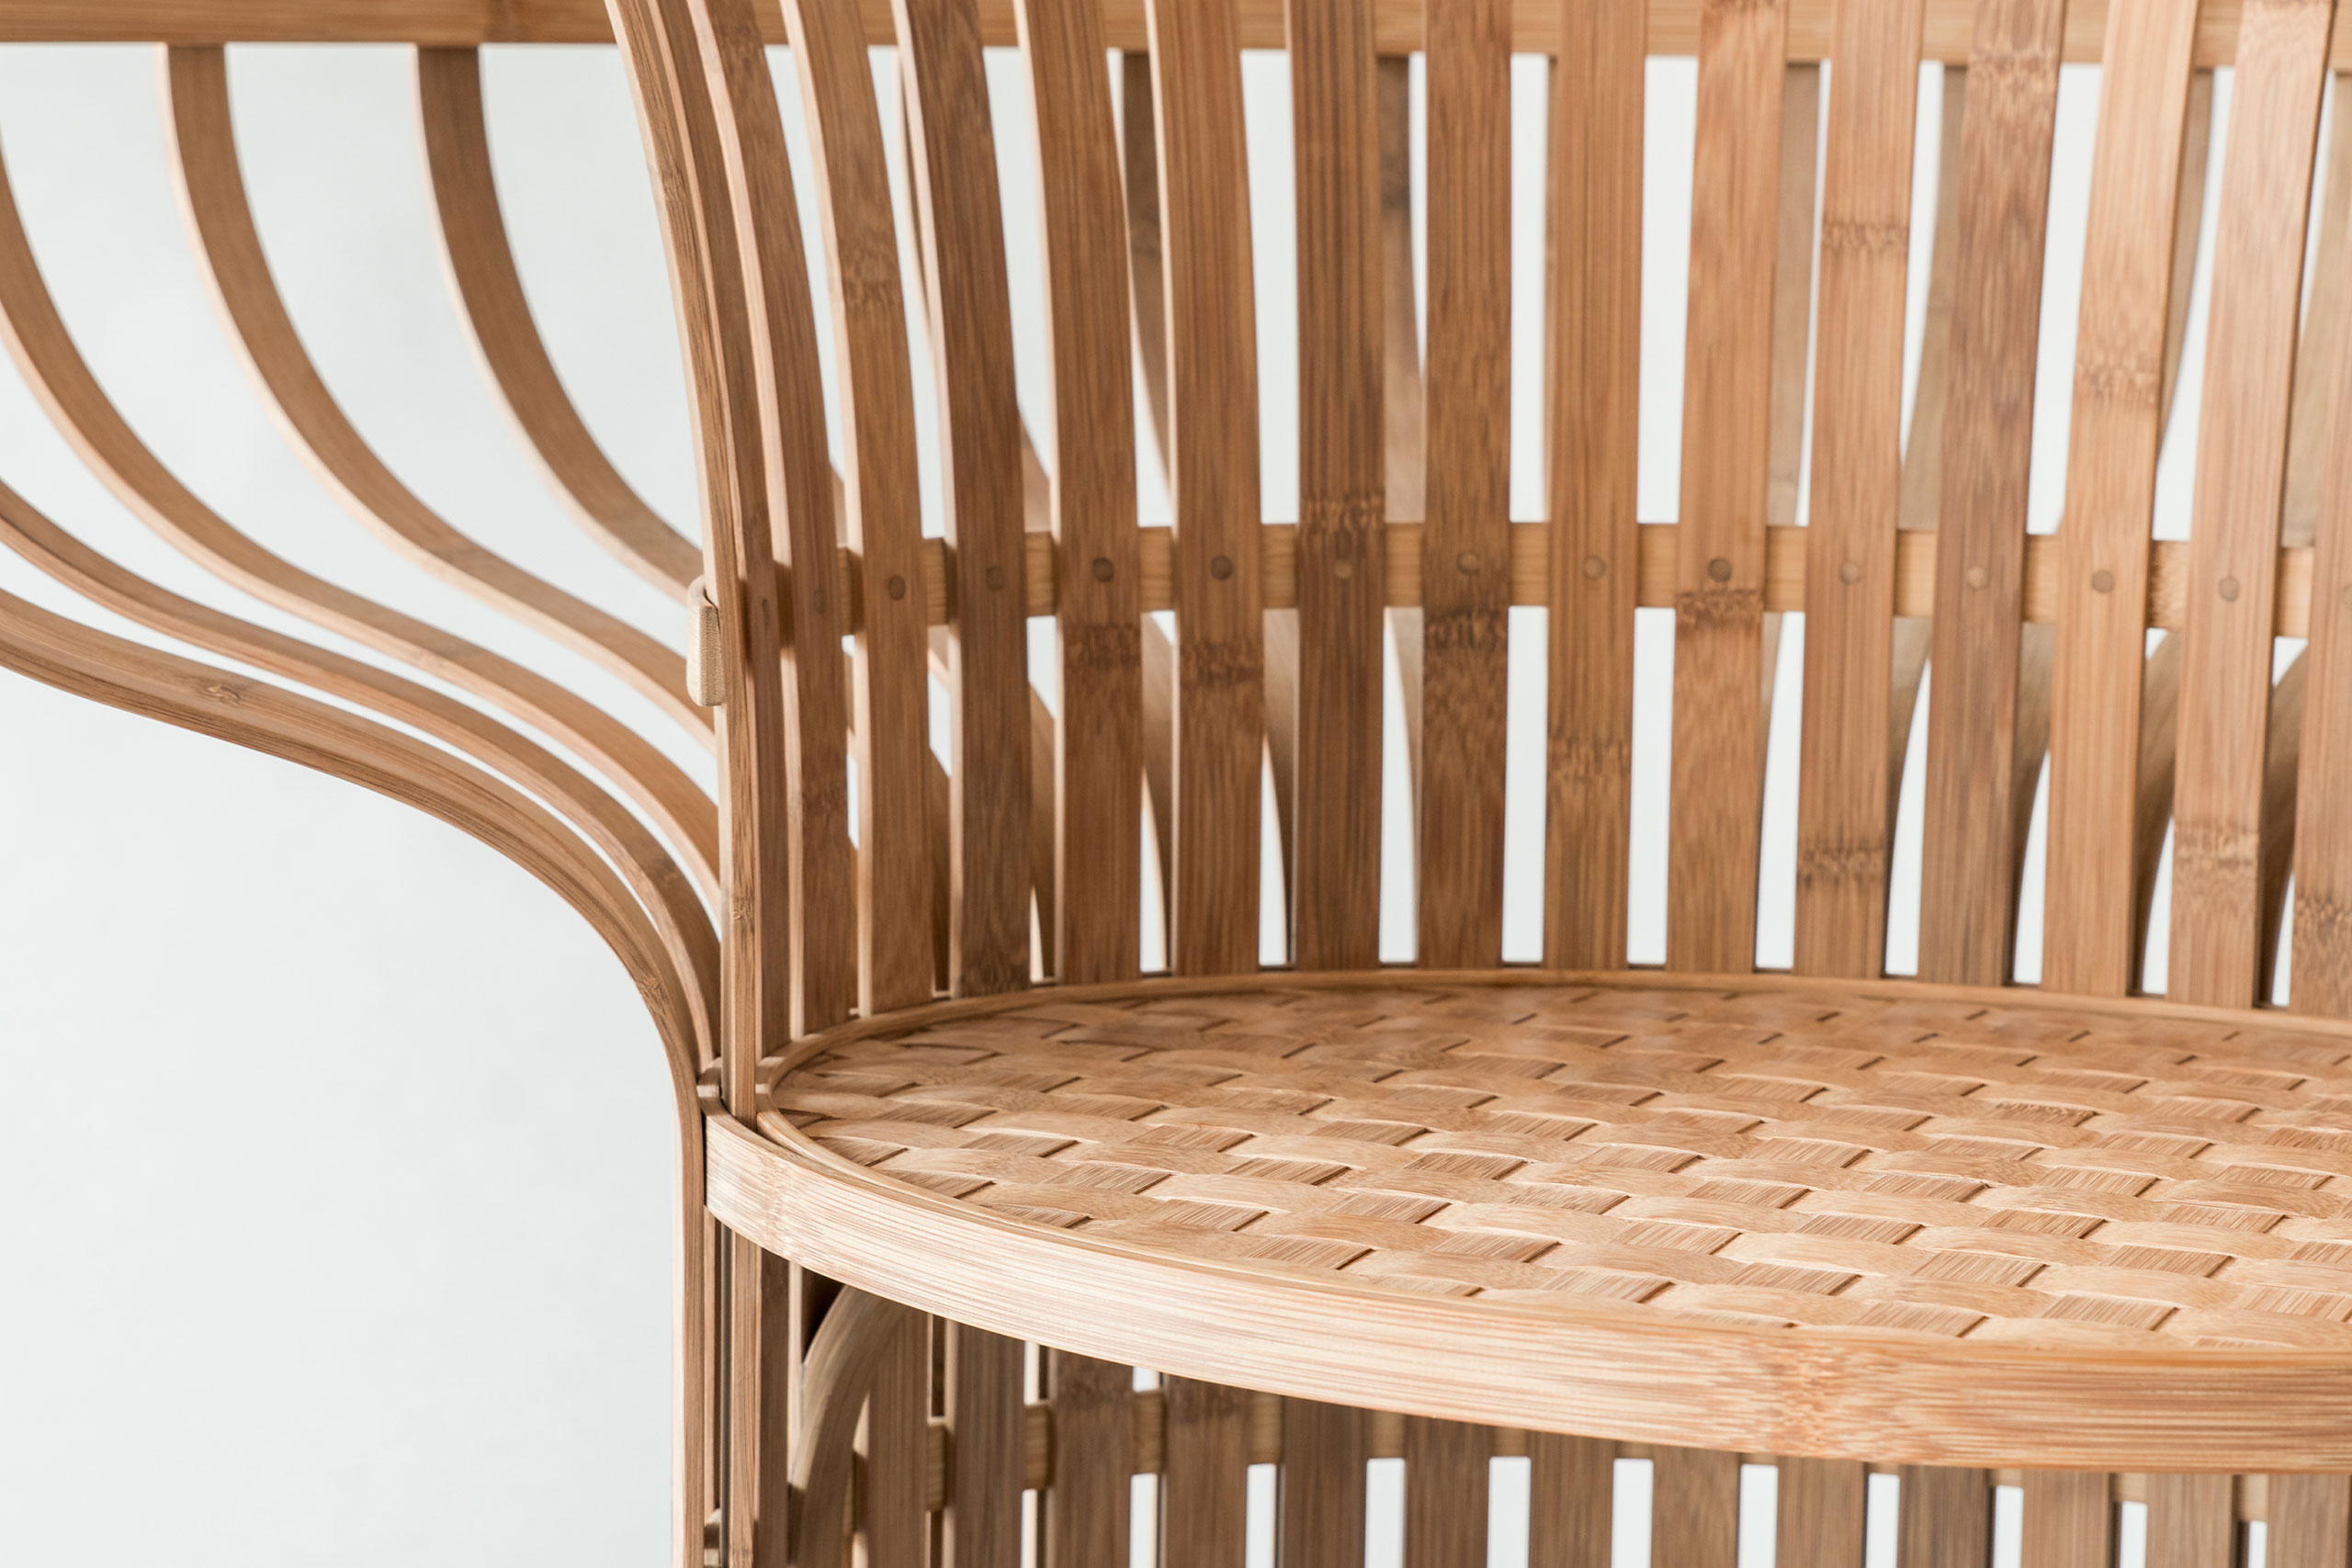 The Indigo-Dyed Bamboo Chair, designed by Jin Kuramoto (Japan). Craftsman : Lin, Jian Cheng (Taiwan), Tang, Wen-Chun (Taiwan). Photo by Maciej Korbas (Poland) / Courtesy NTCRI & Taiwan Designers Web.